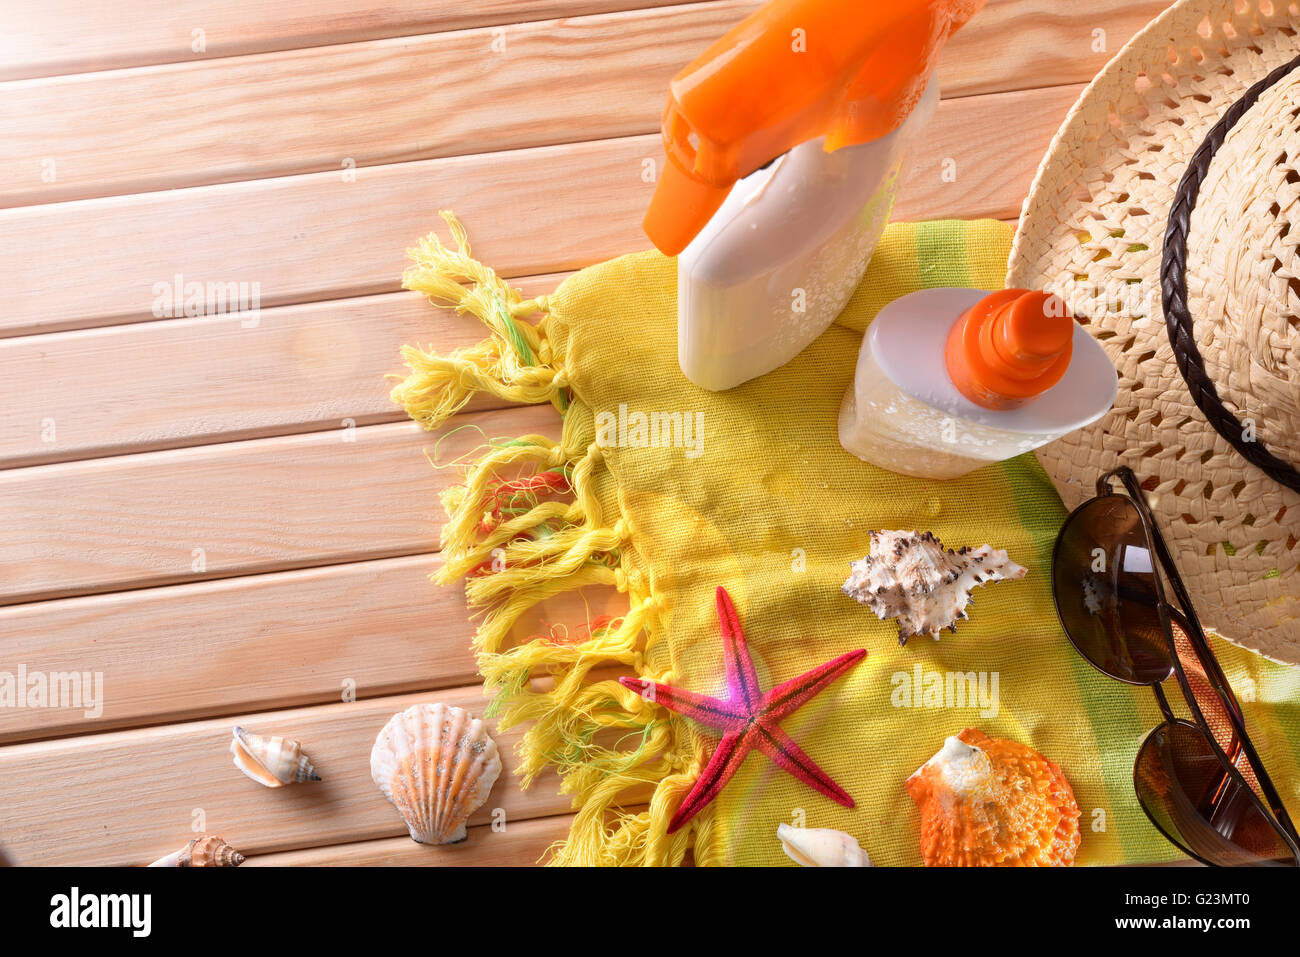 Two spray suncream on towel and wooden slats with shells. Horizontal composition. Top view - Stock Image